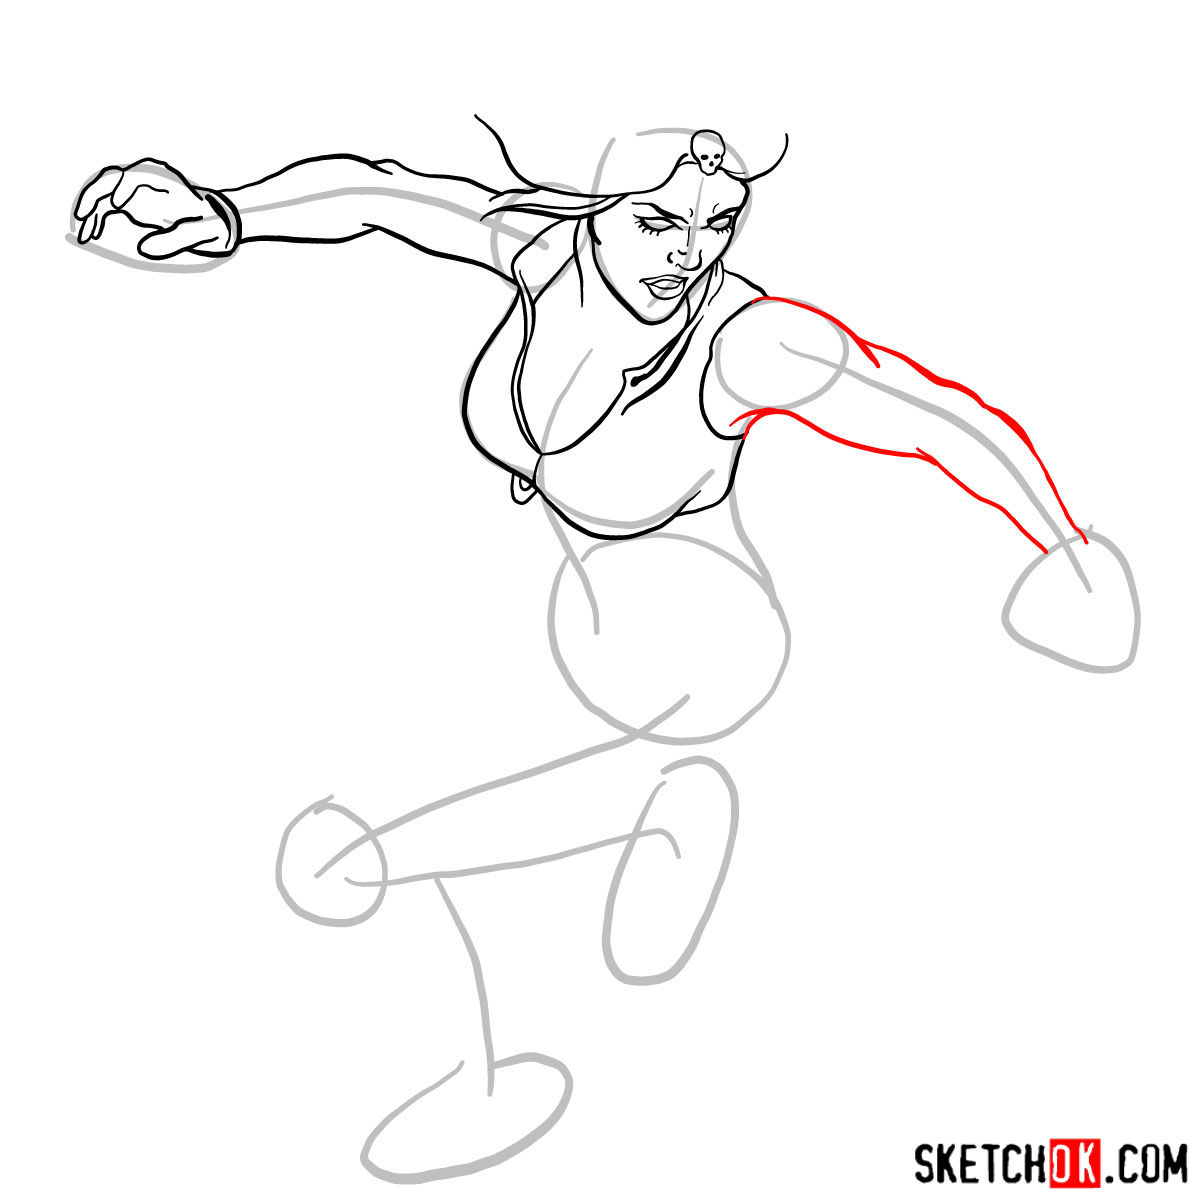 How to draw Mystique (Raven Darkhölme) from Marvel X-Men comics - step 08